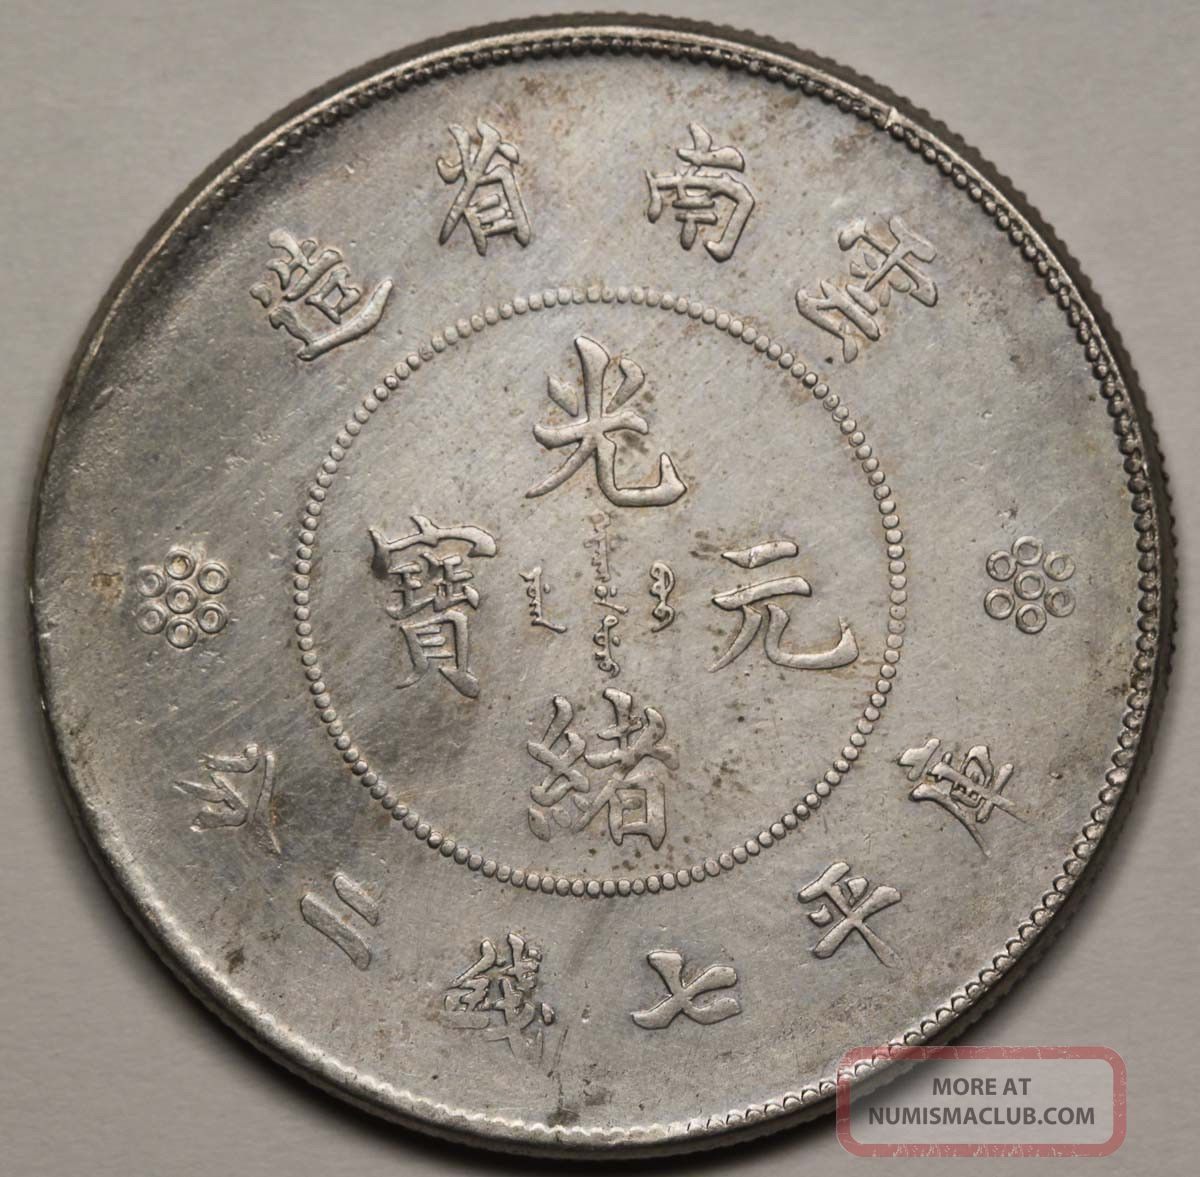 1911 China Yunnan 1 Dollar Silver Dragon Coin L Amp M 421 Y